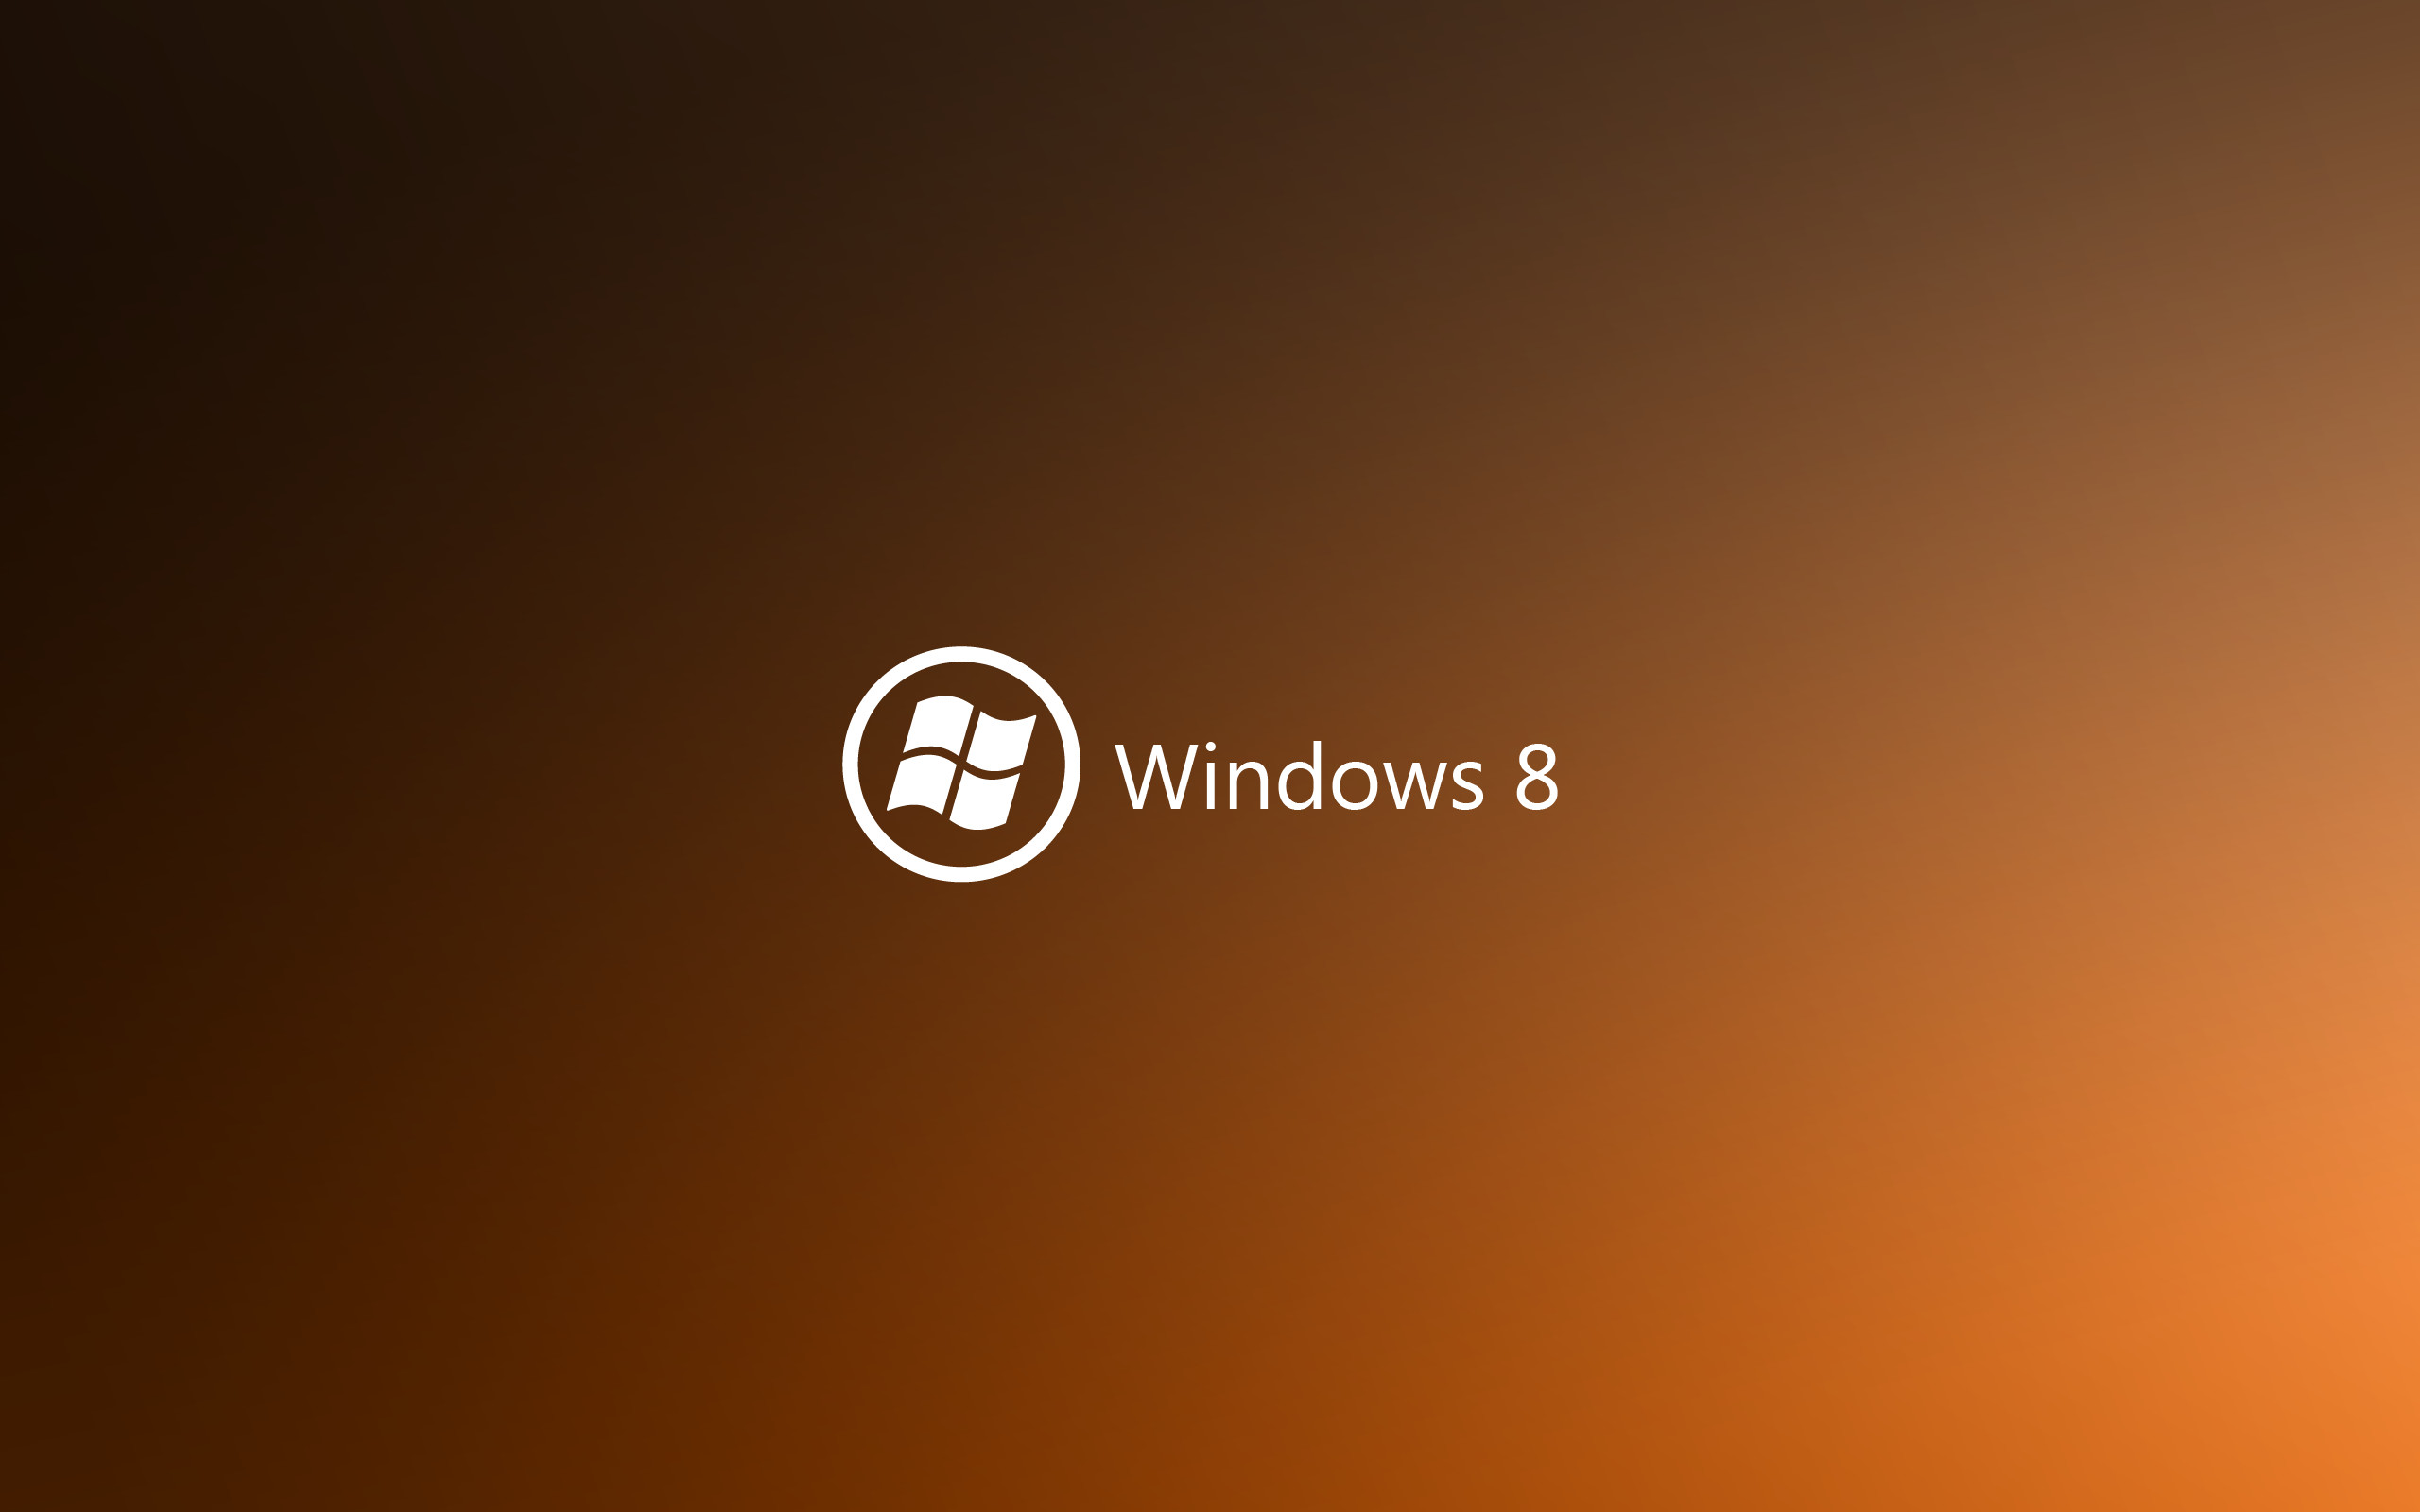 Dark Orange Windows 8. How to set wallpaper on your desktop?  Click the download link from above and set the wallpaper on the desktop  from your OS.